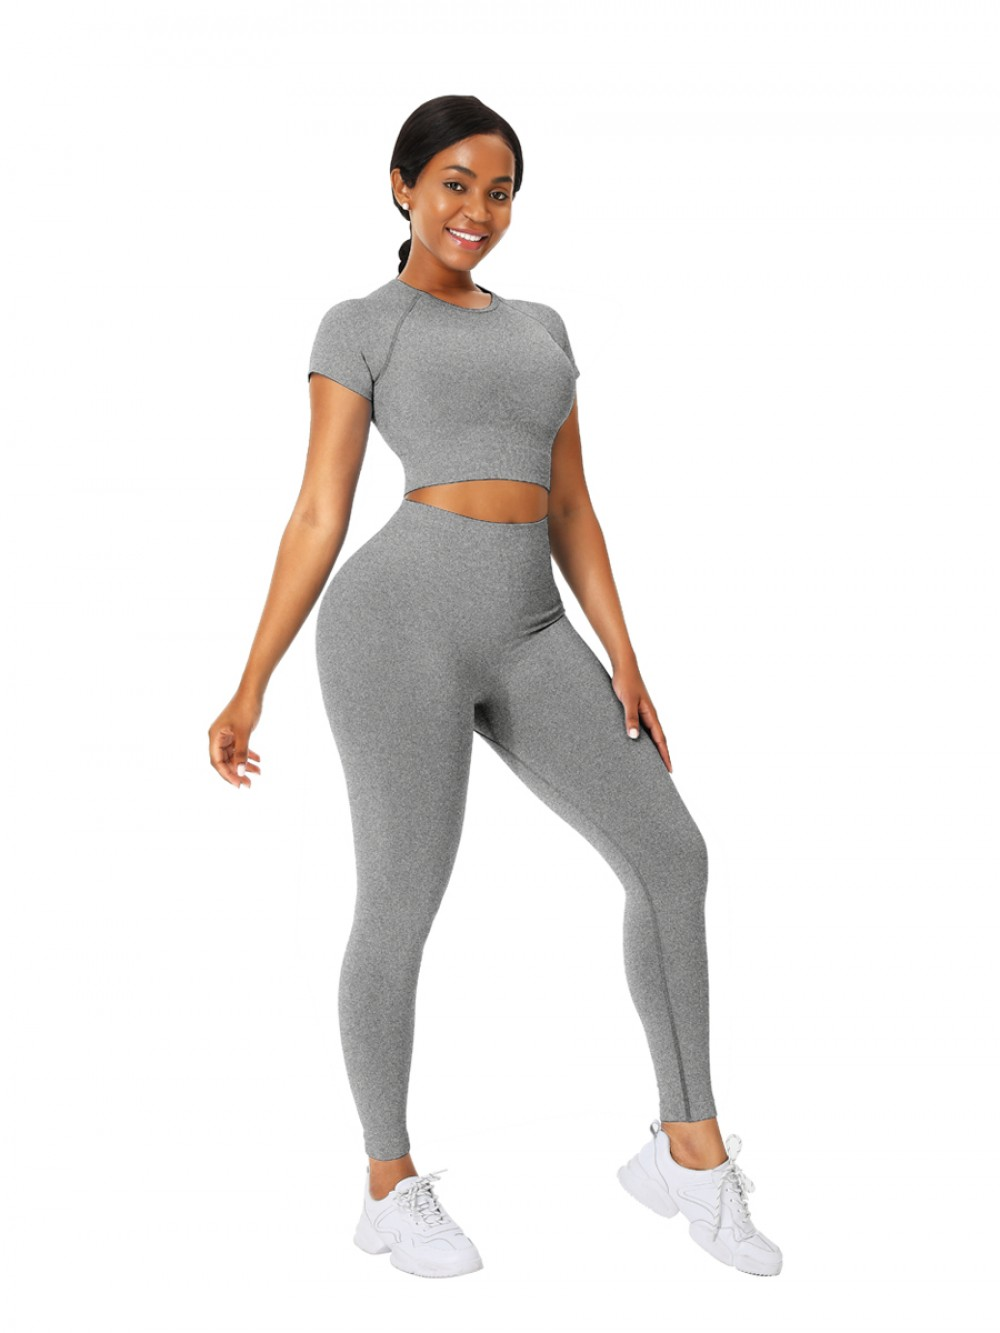 Cozy Gray Solid Color Sports Top Seamless Legging Exercise